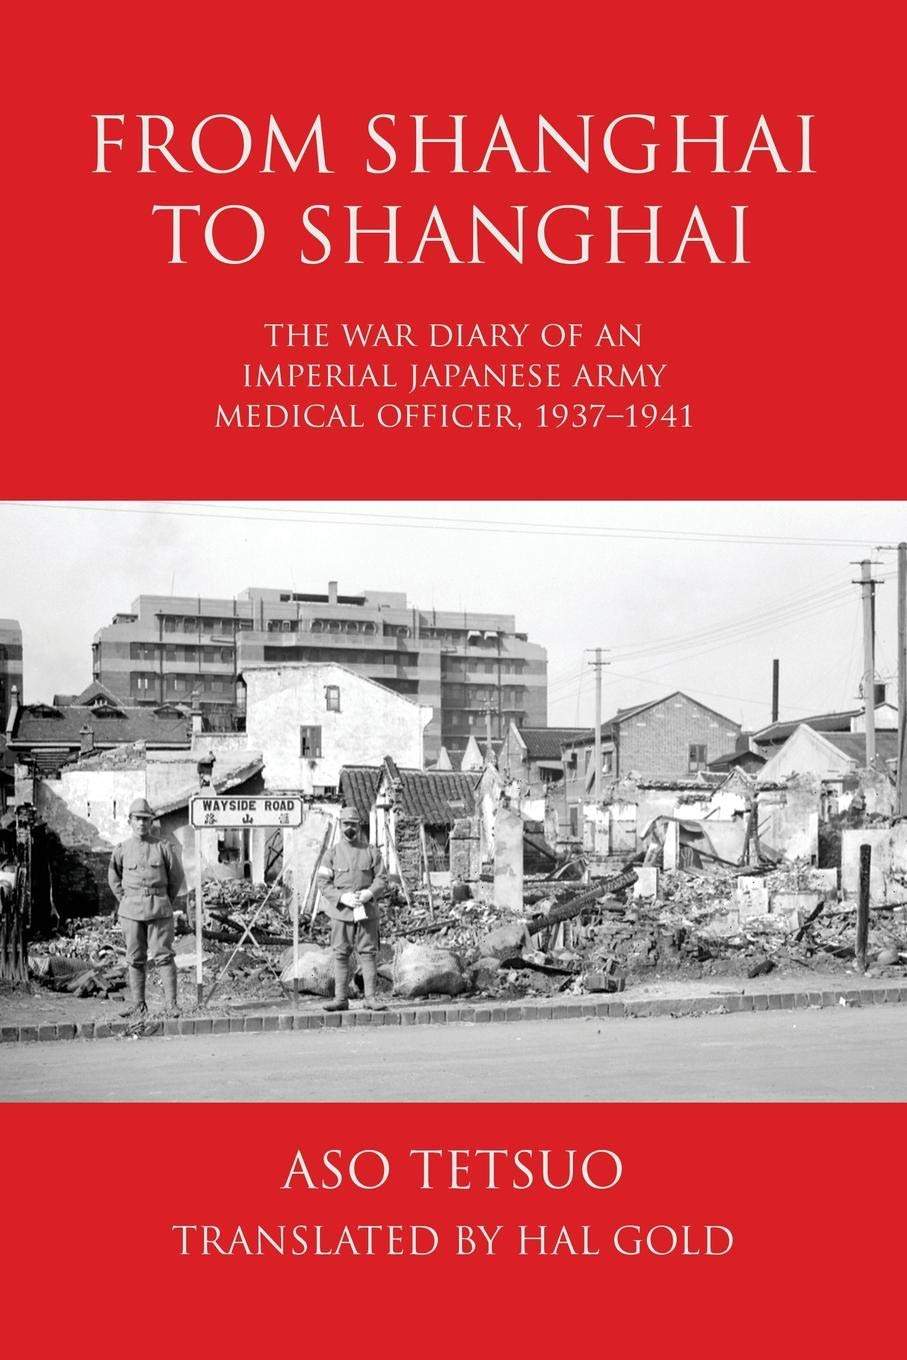 From Shanghai to Shanghai: The War Diary of an Imperial Japanese Army Medical Officer, 1937-1941 ebook